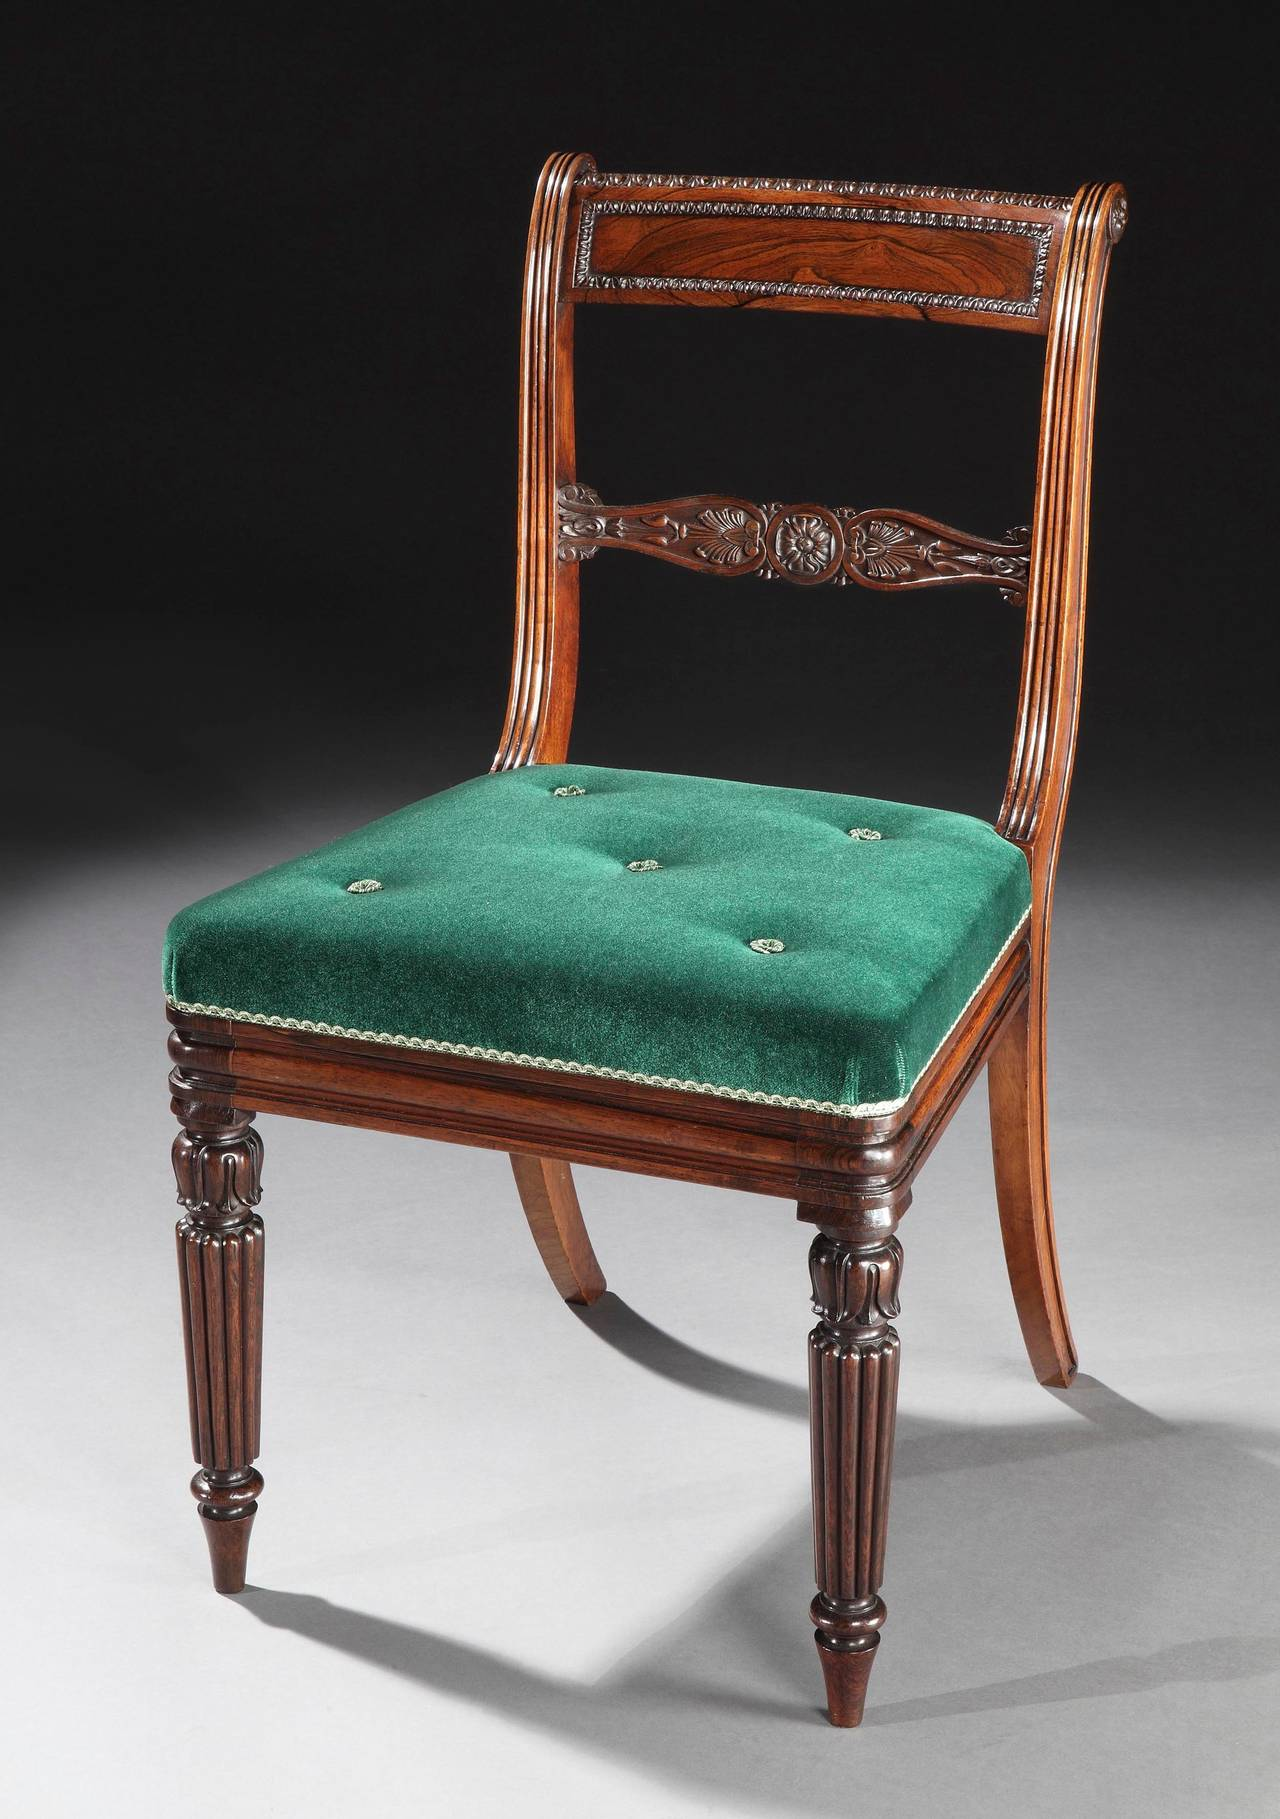 Set of 20 Regency Period Dining Chairs with Green Velvet